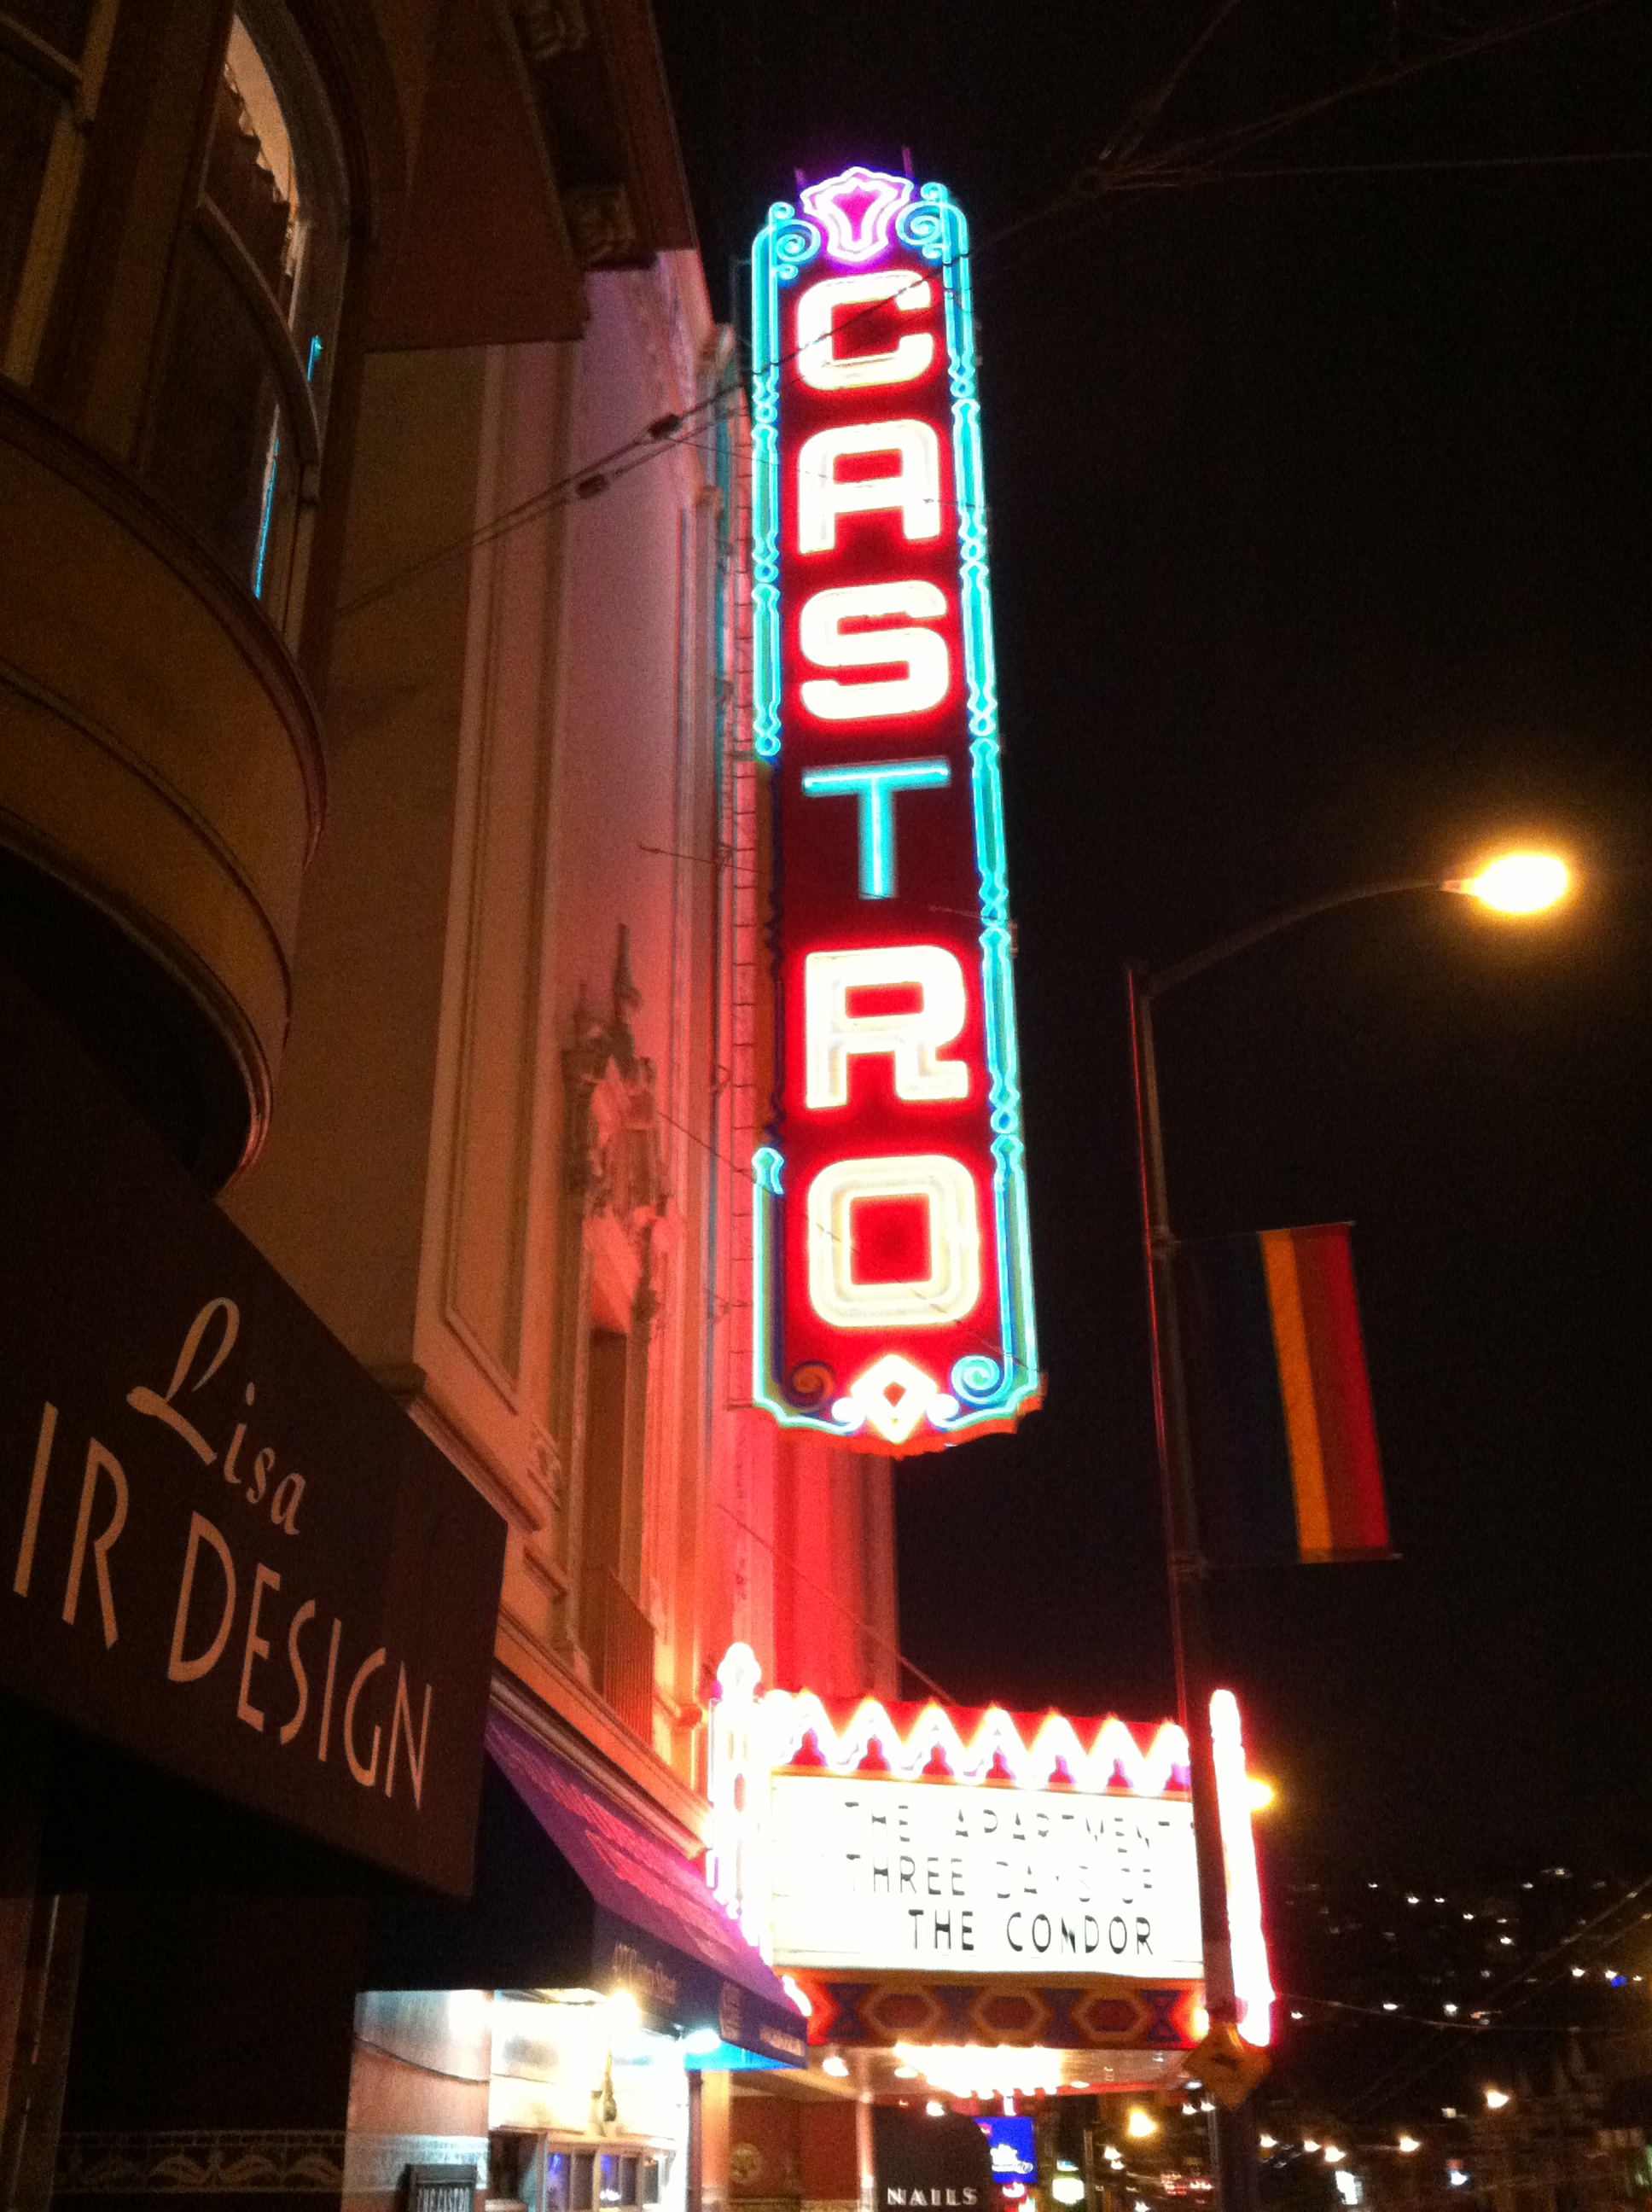 The Castro. The perfect place to spend our first evening.